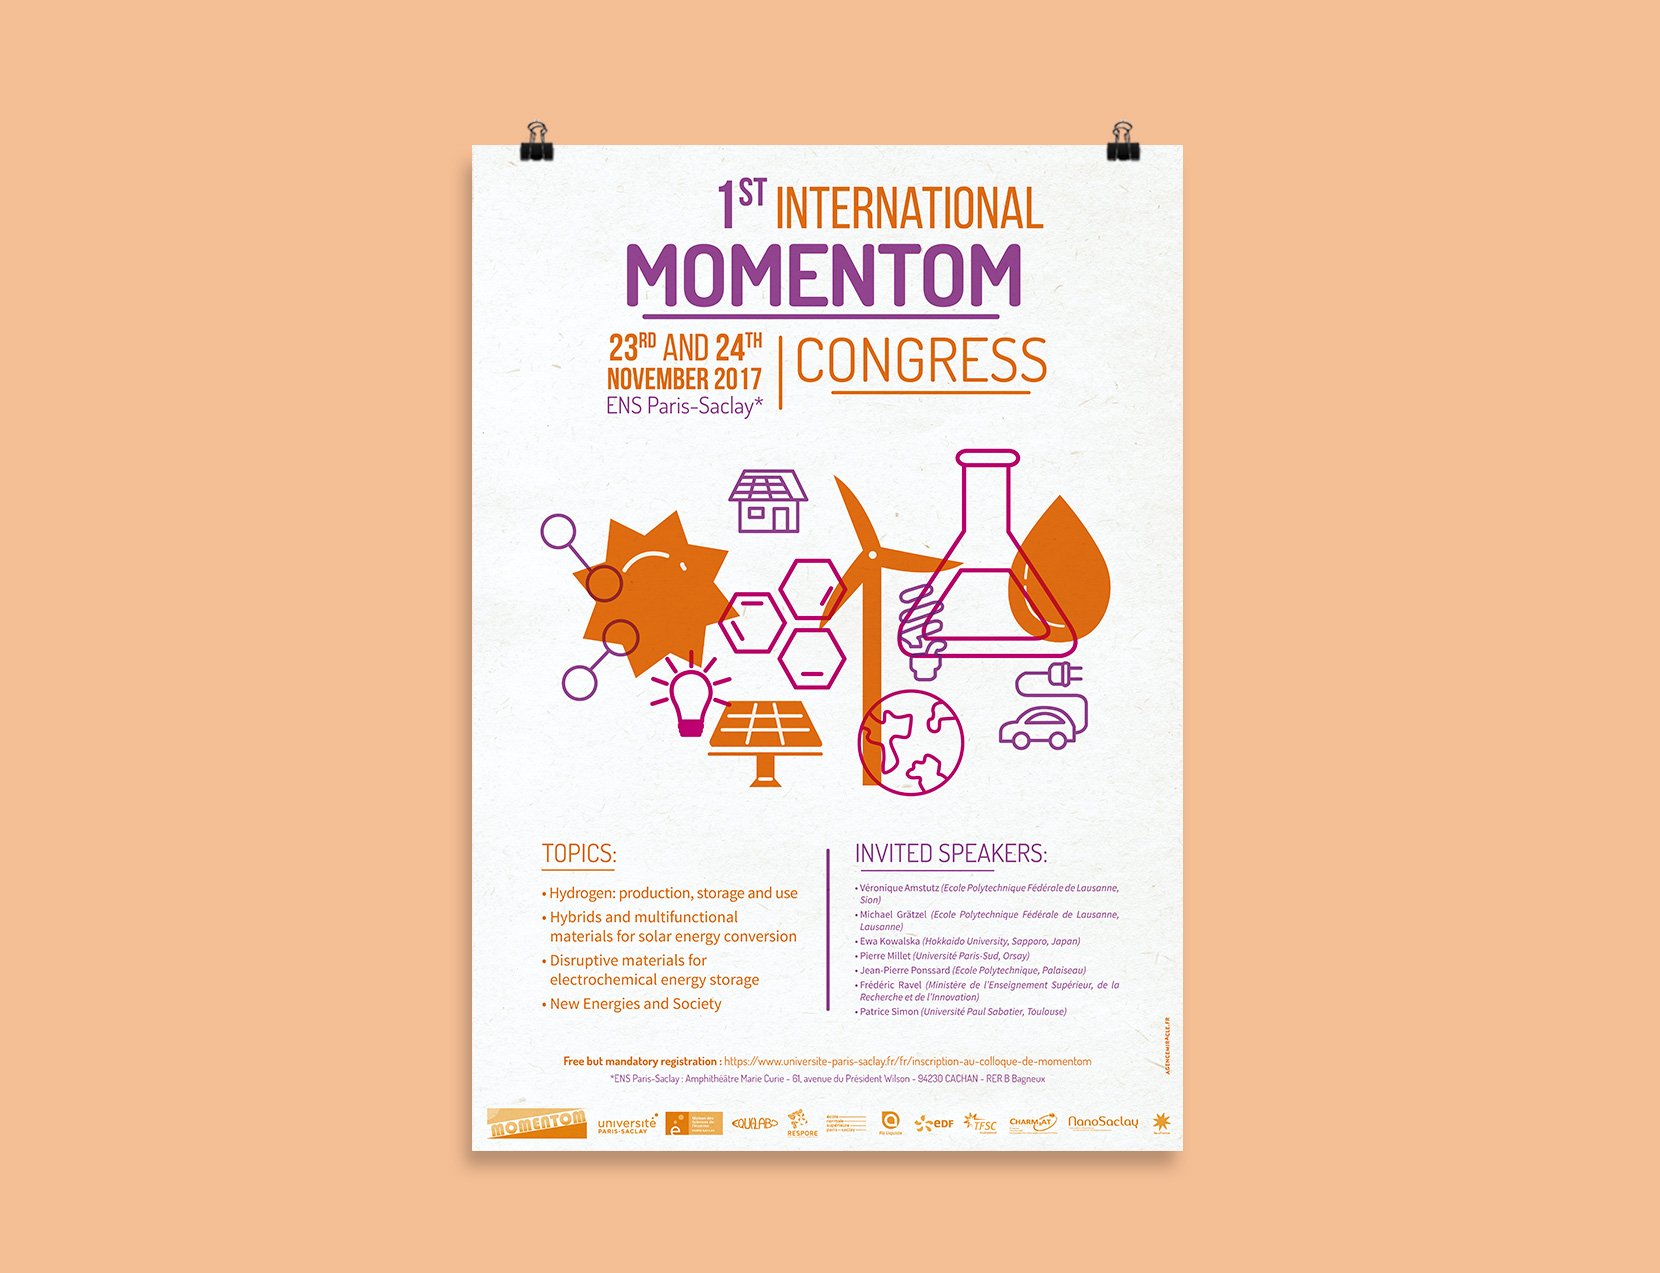 agence-miracle-graphisme-illustration-nanterre-affiche-momentom-paris-saclay-msh-cnrs-2017